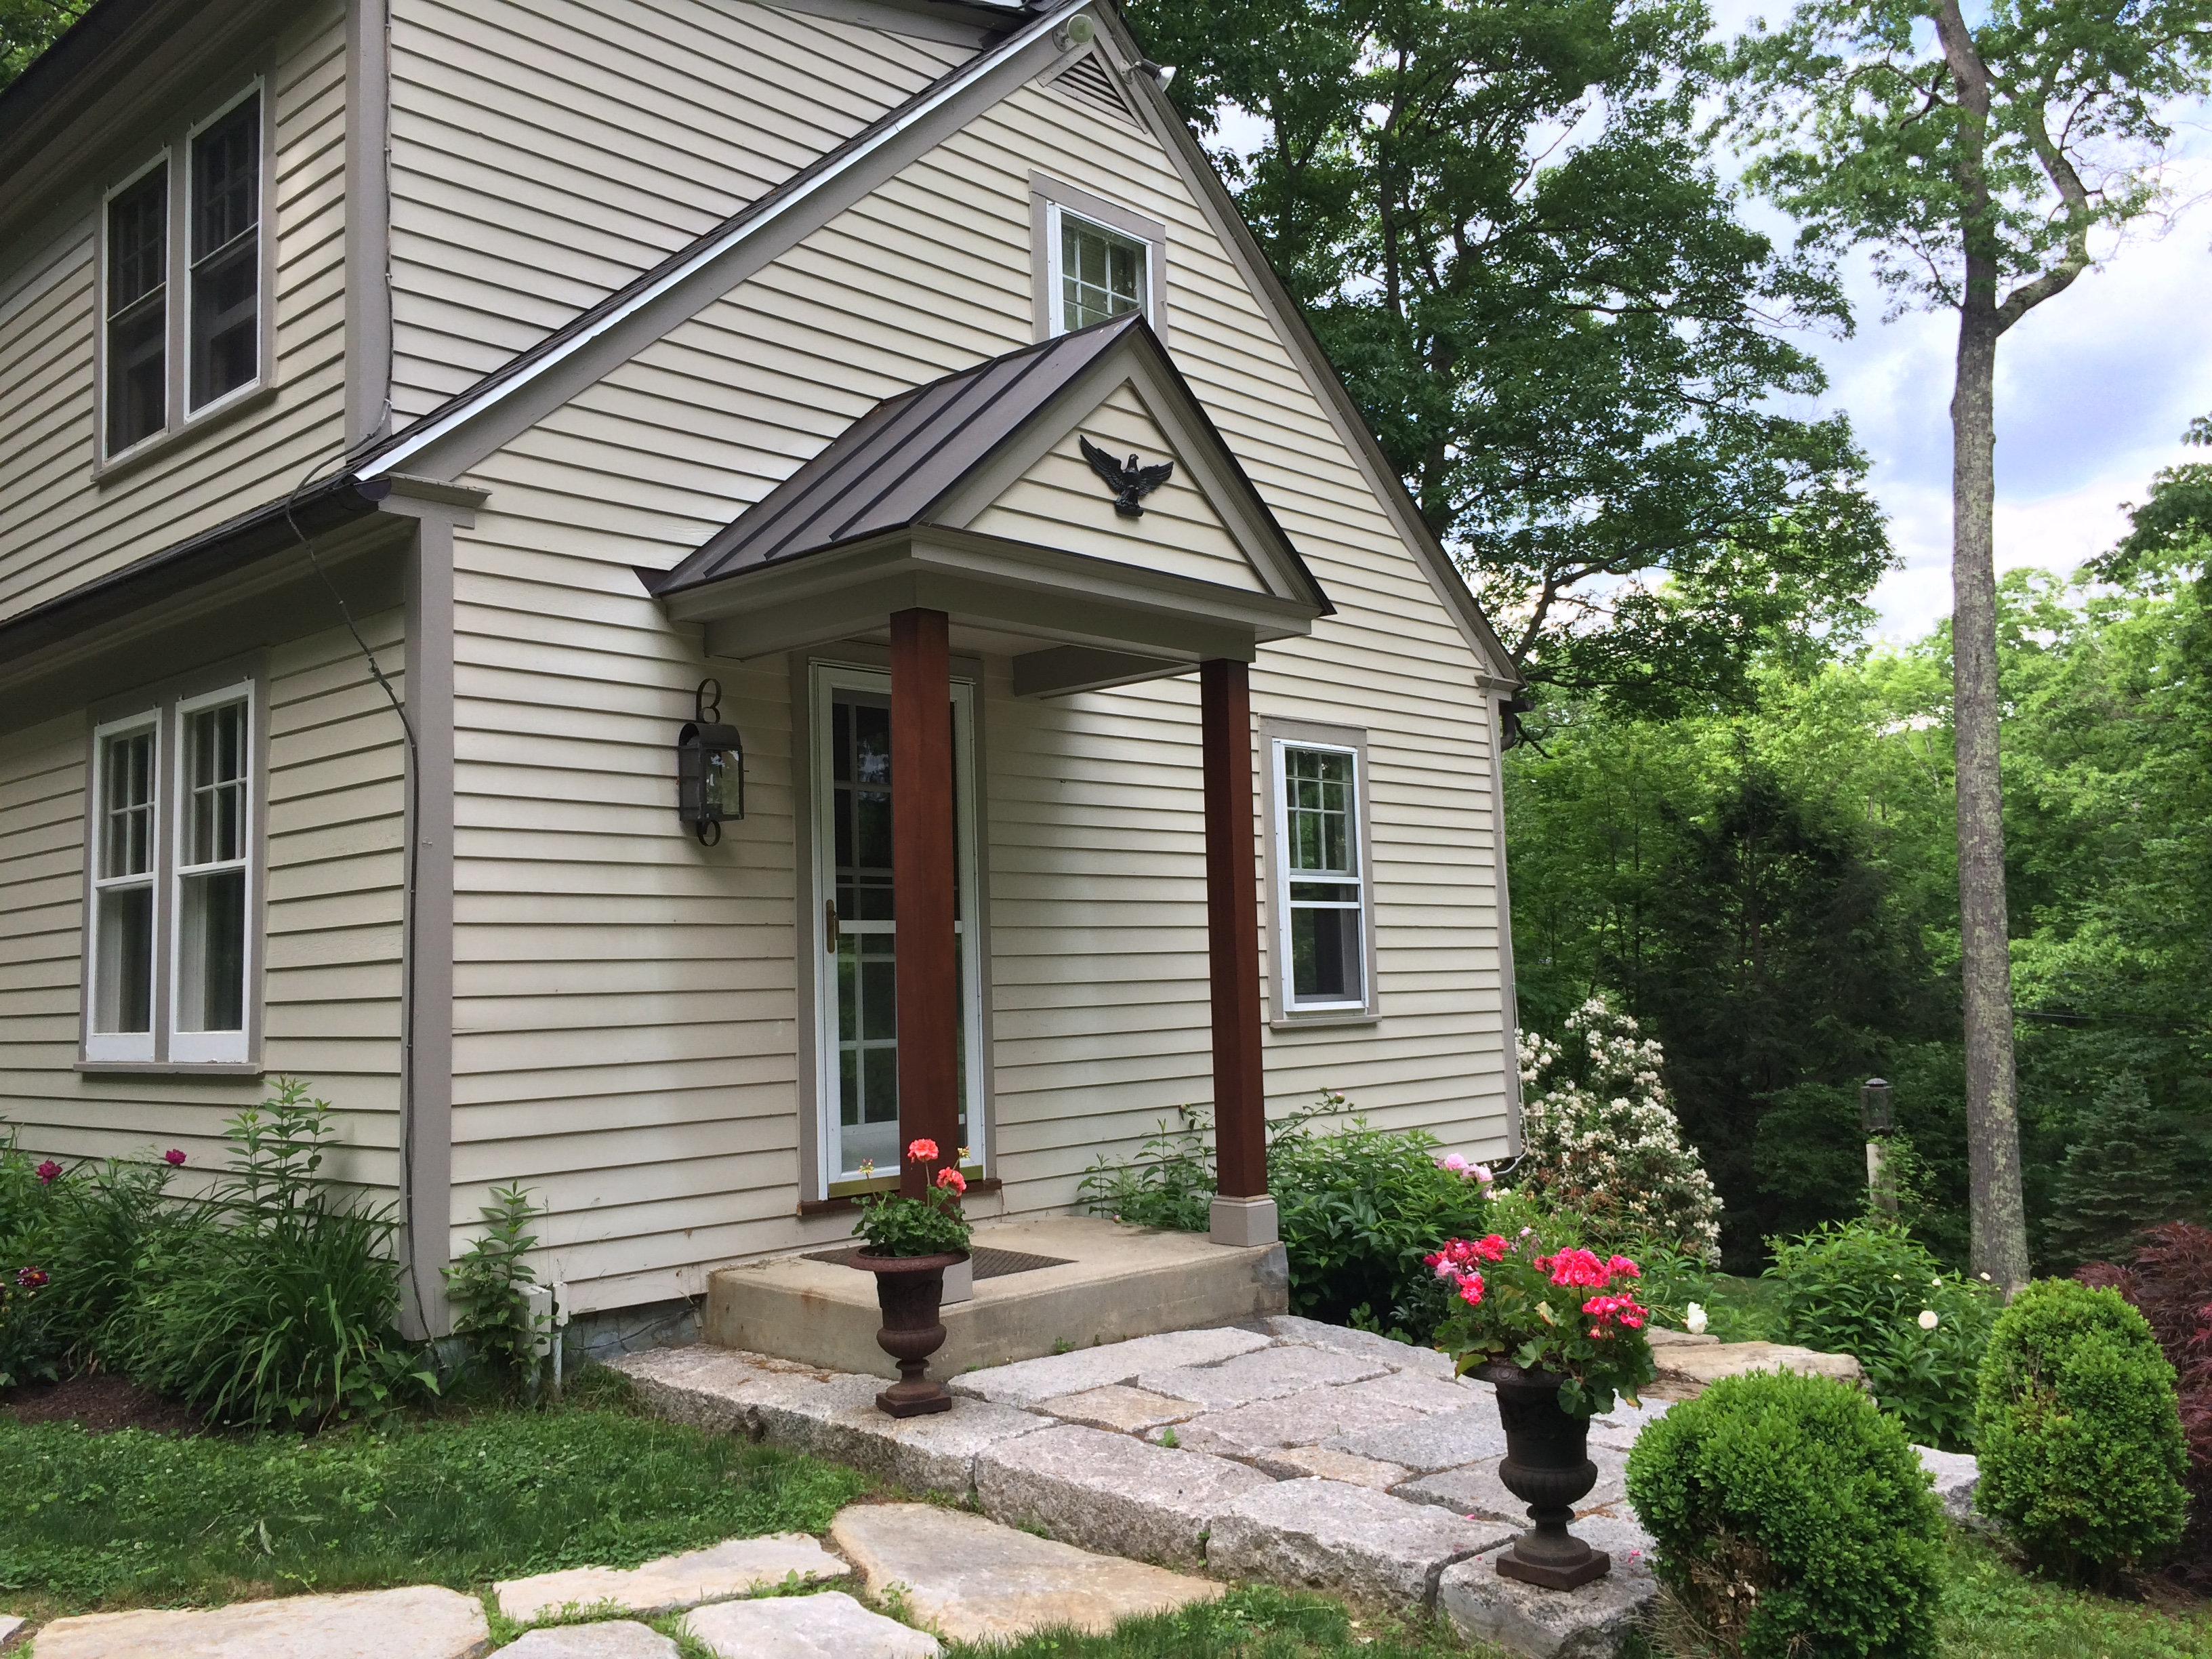 Single Family Home for Sale at Charming Cottage with Access to Lake Waramaug 194 Woodville Rd Warren, Connecticut, 06777 United States